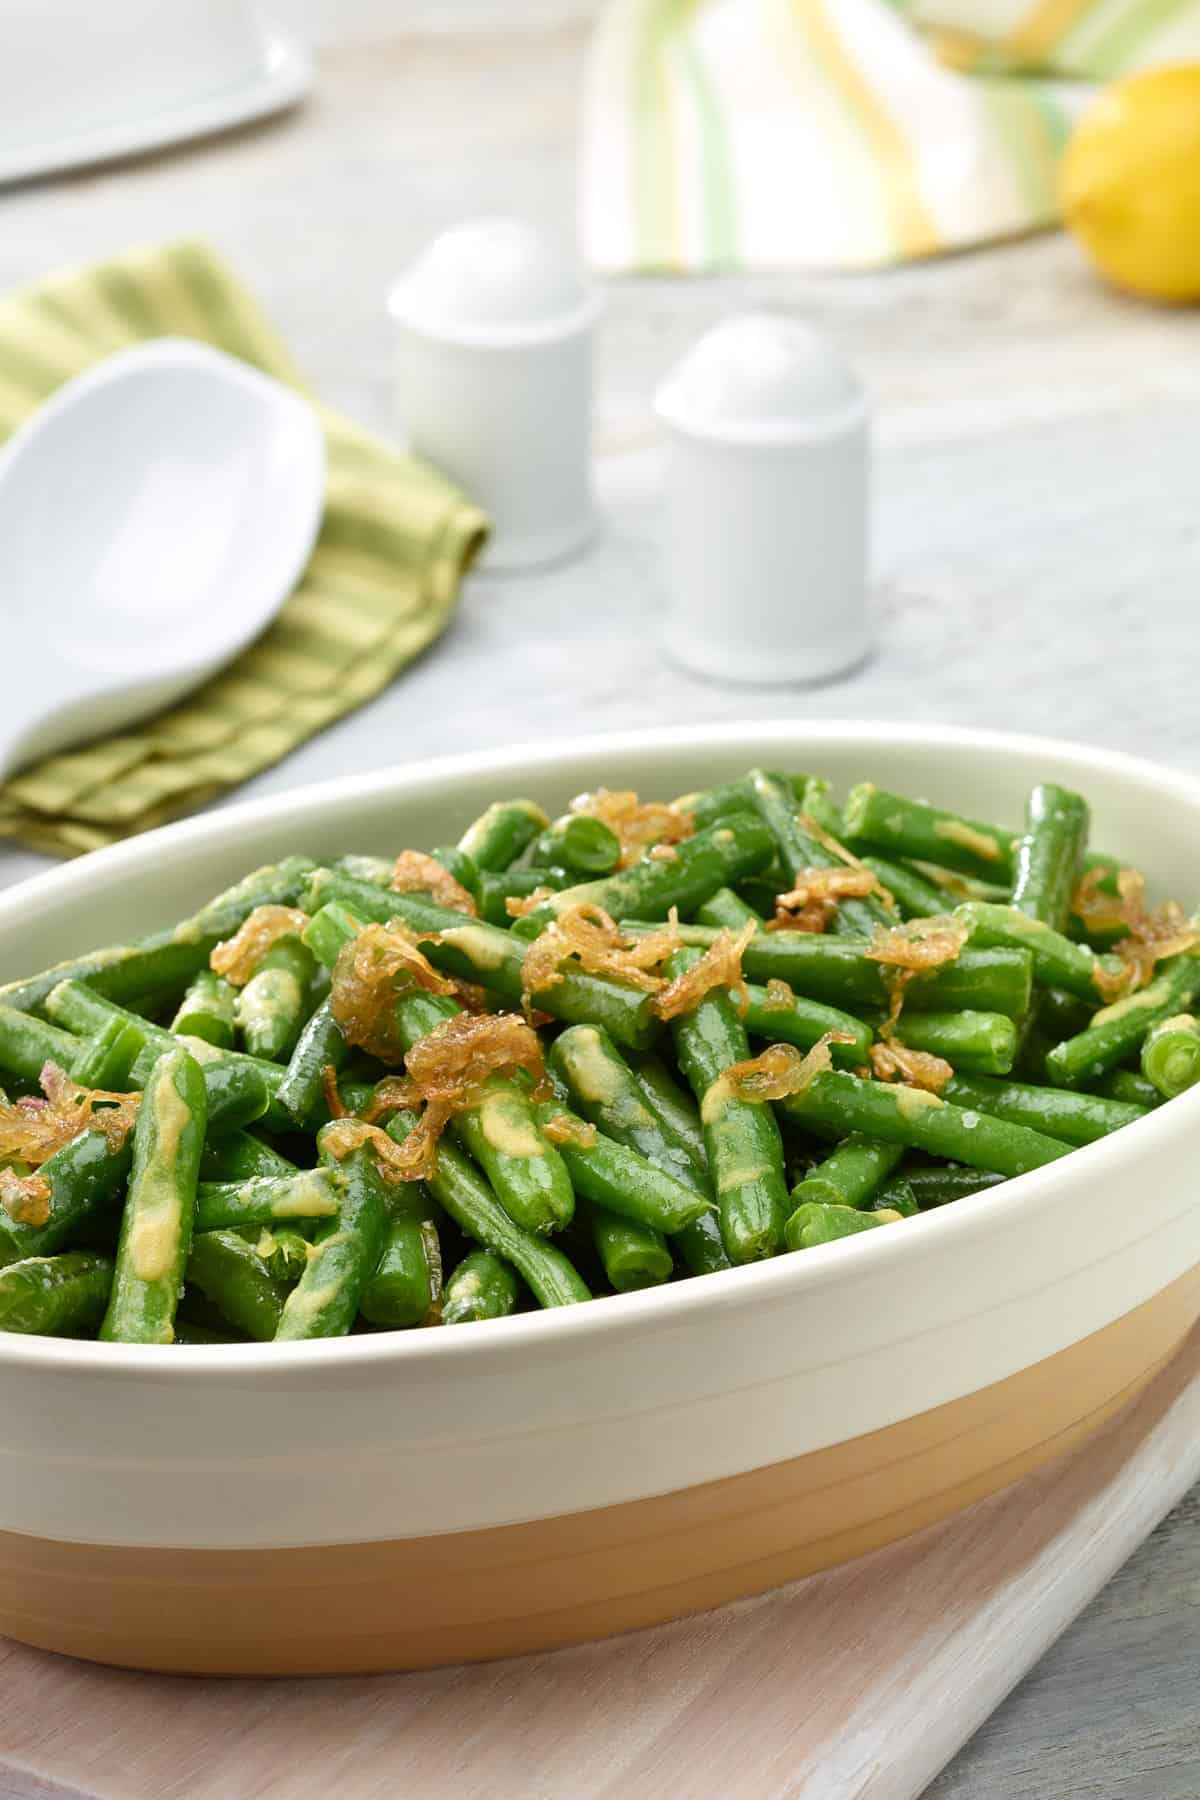 Oval white dish filled with Lemon-Dijon Green Beans with Caramelized Shallots